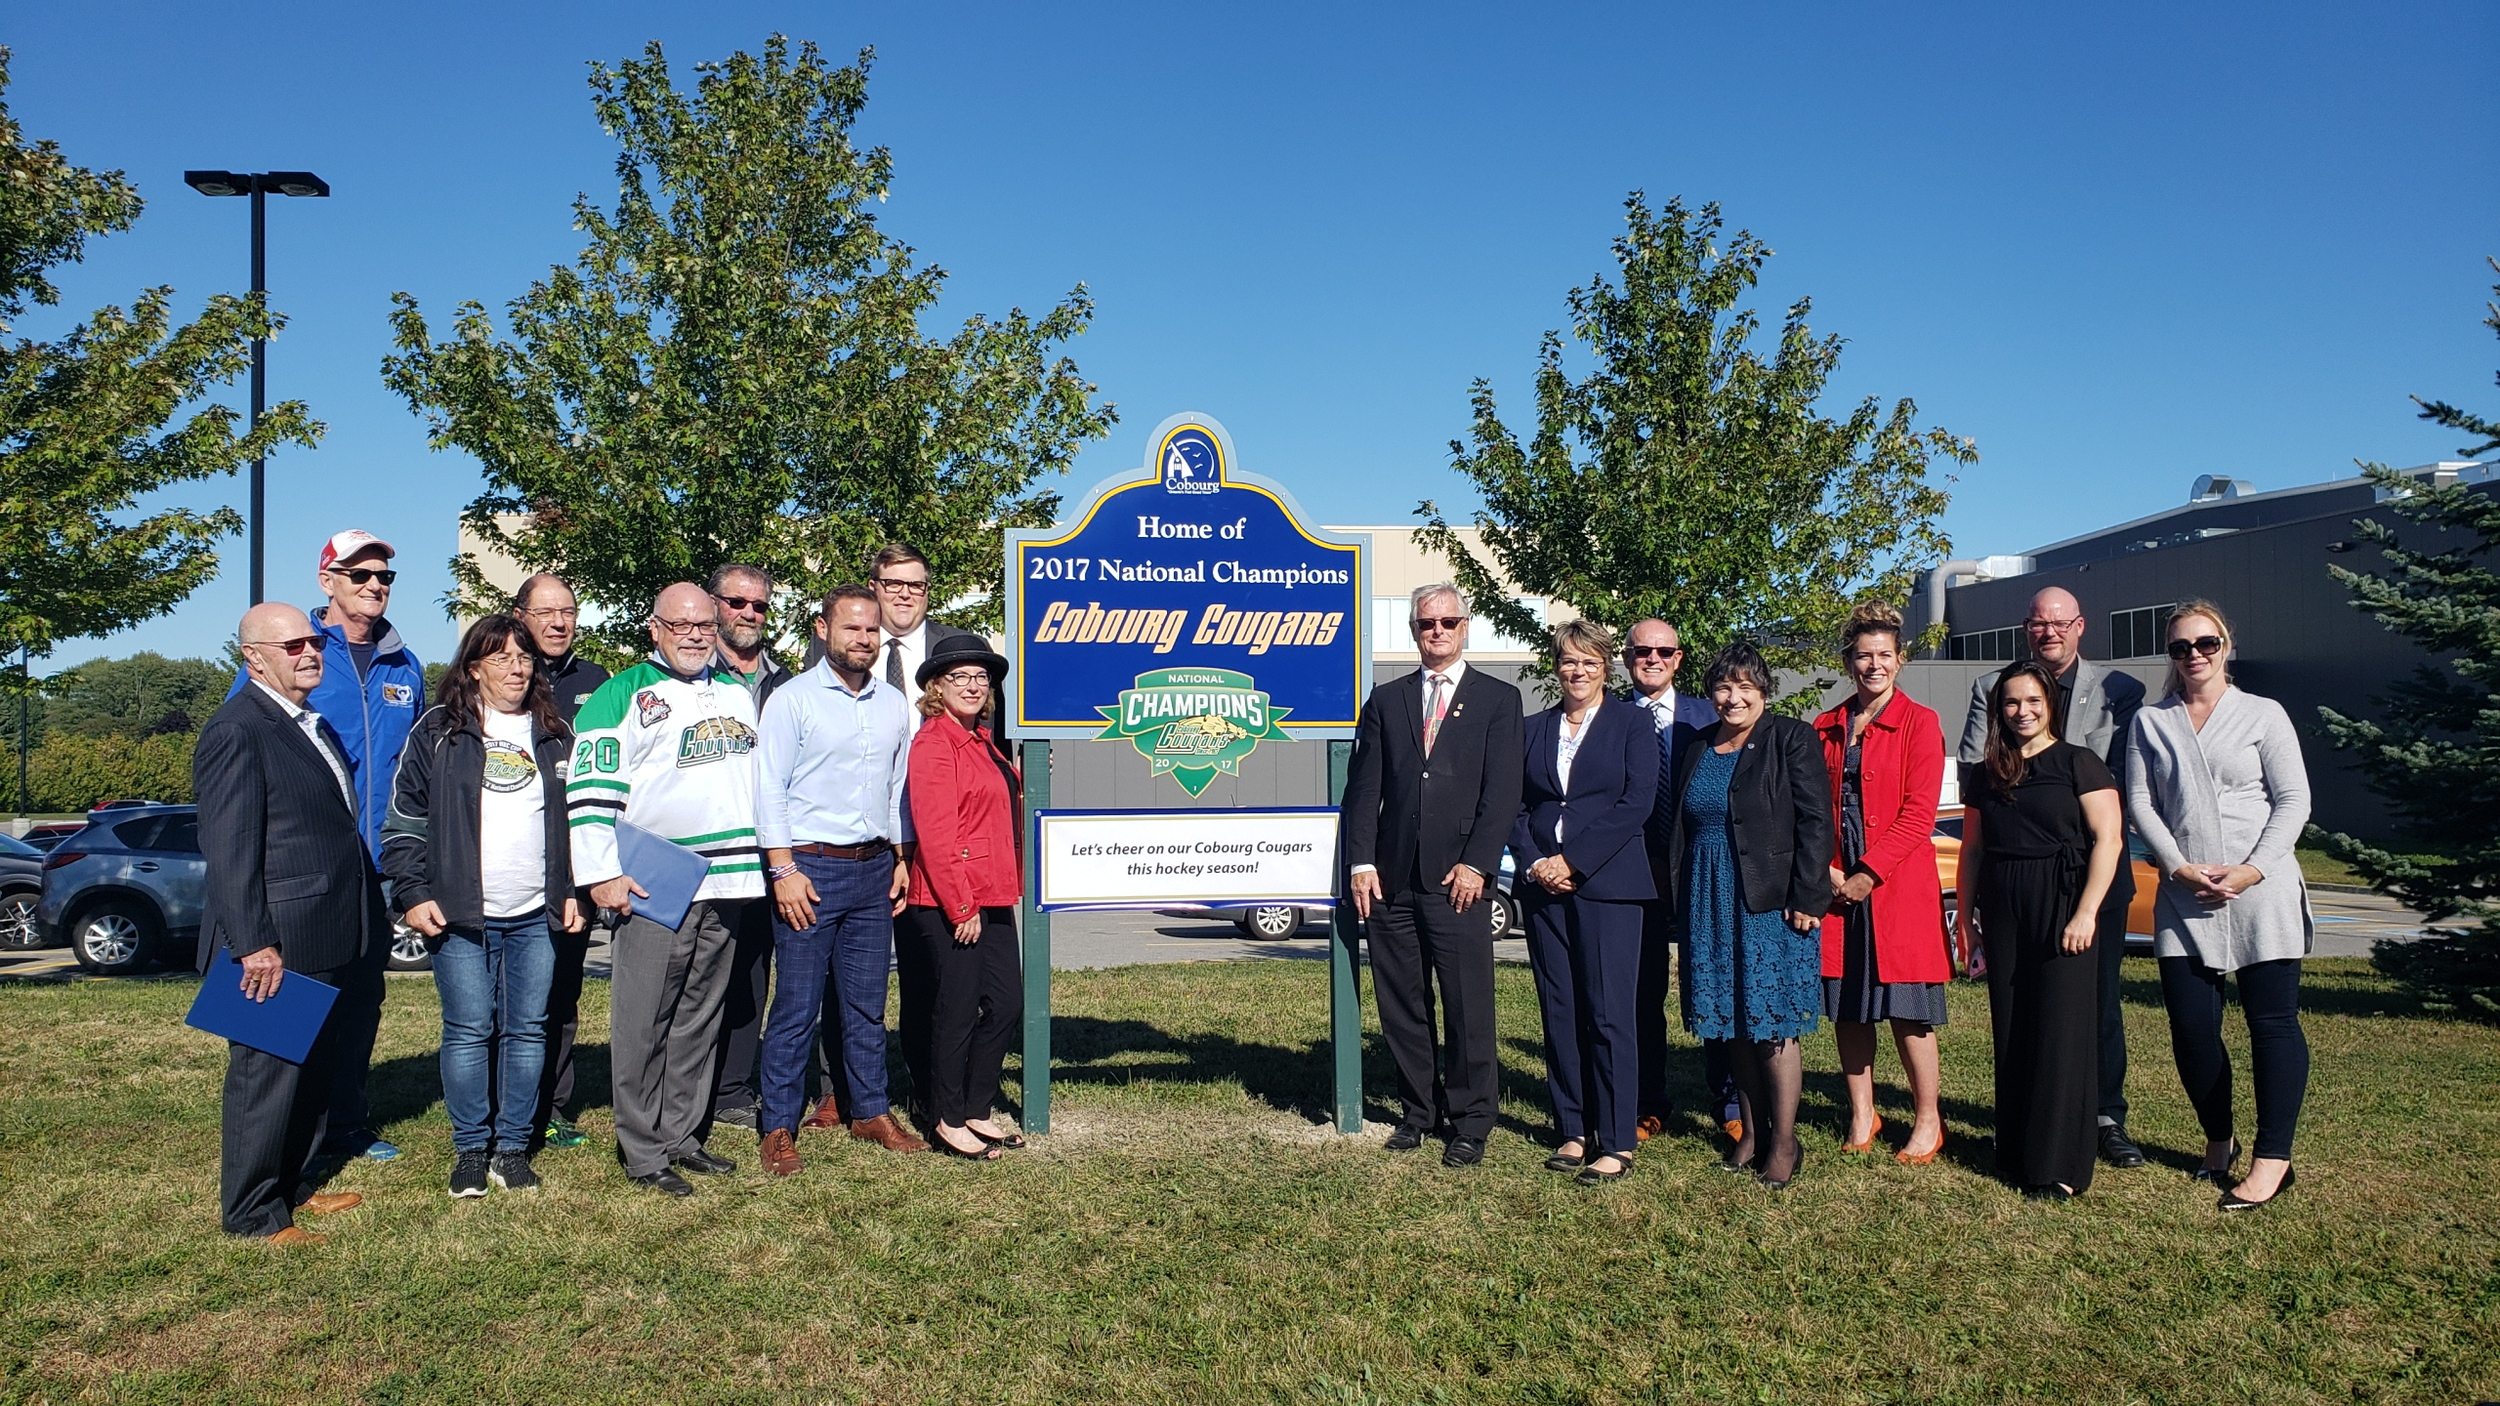 Cobourg Cougar Sign Unveiling_Group Photo.png